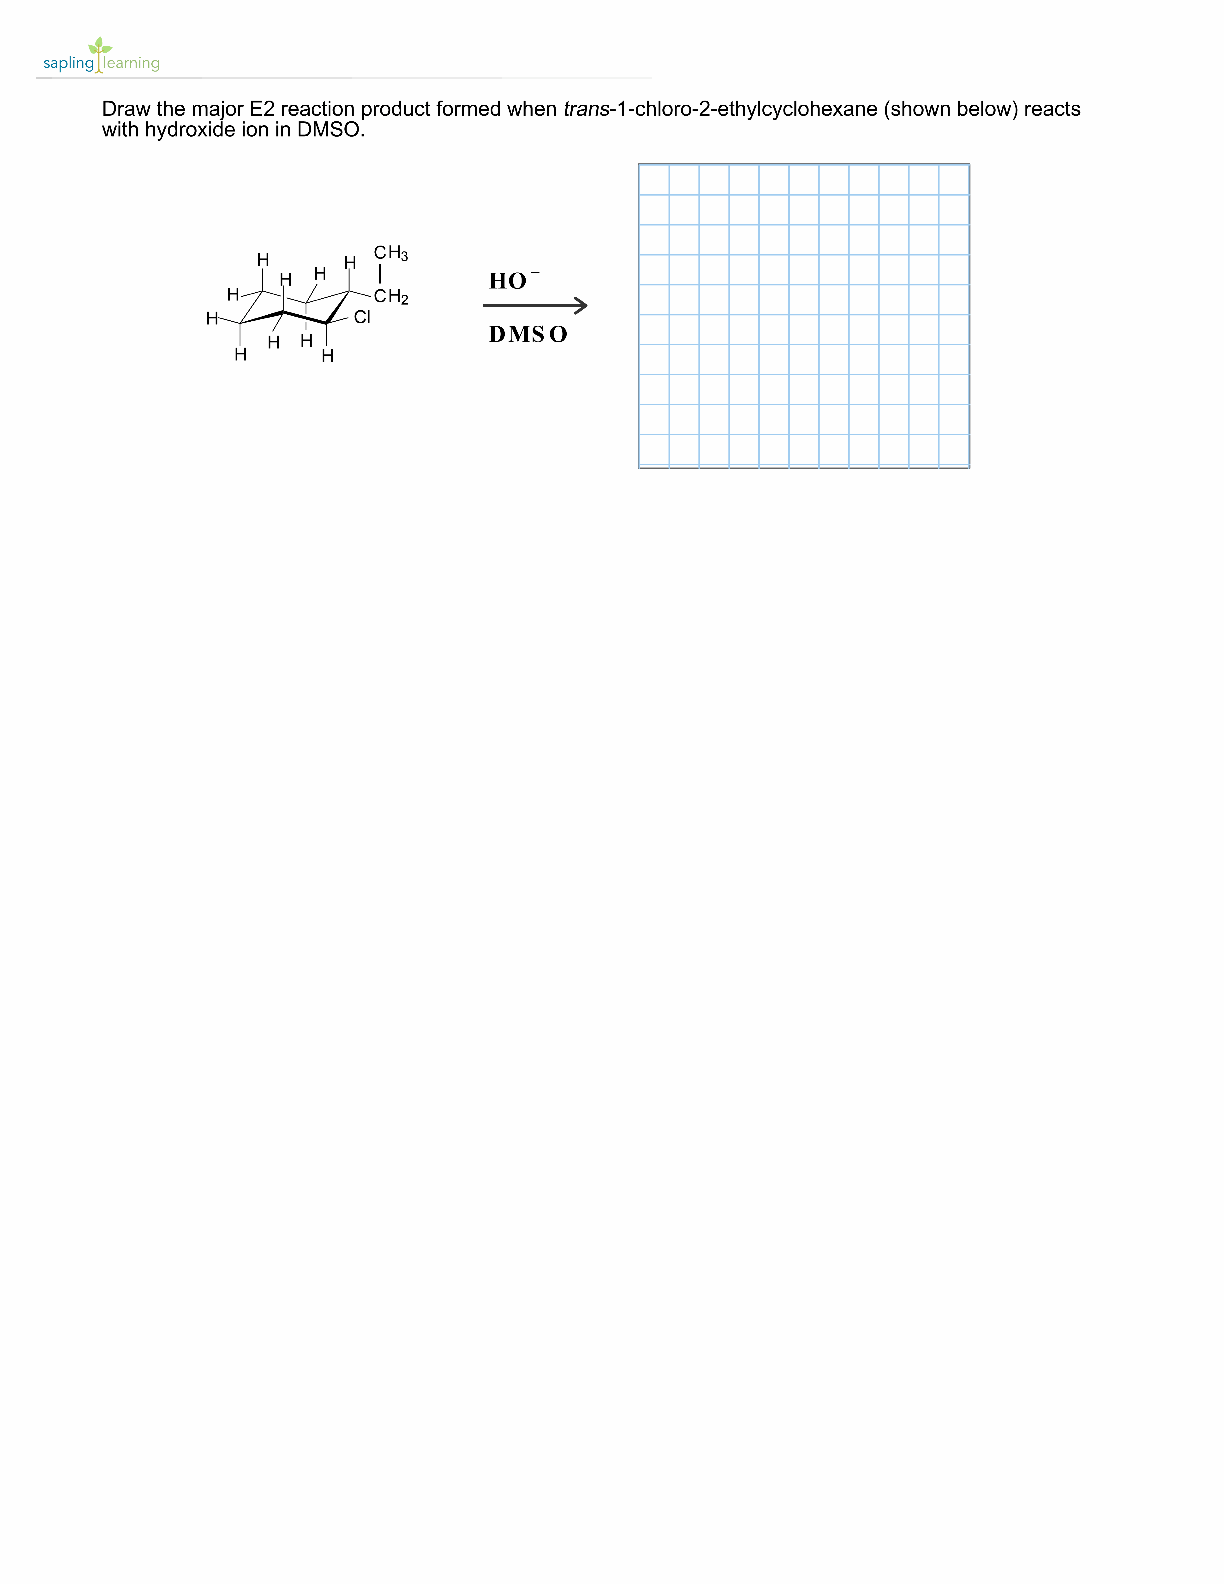 Draw the major E2 reaction product formed when fra